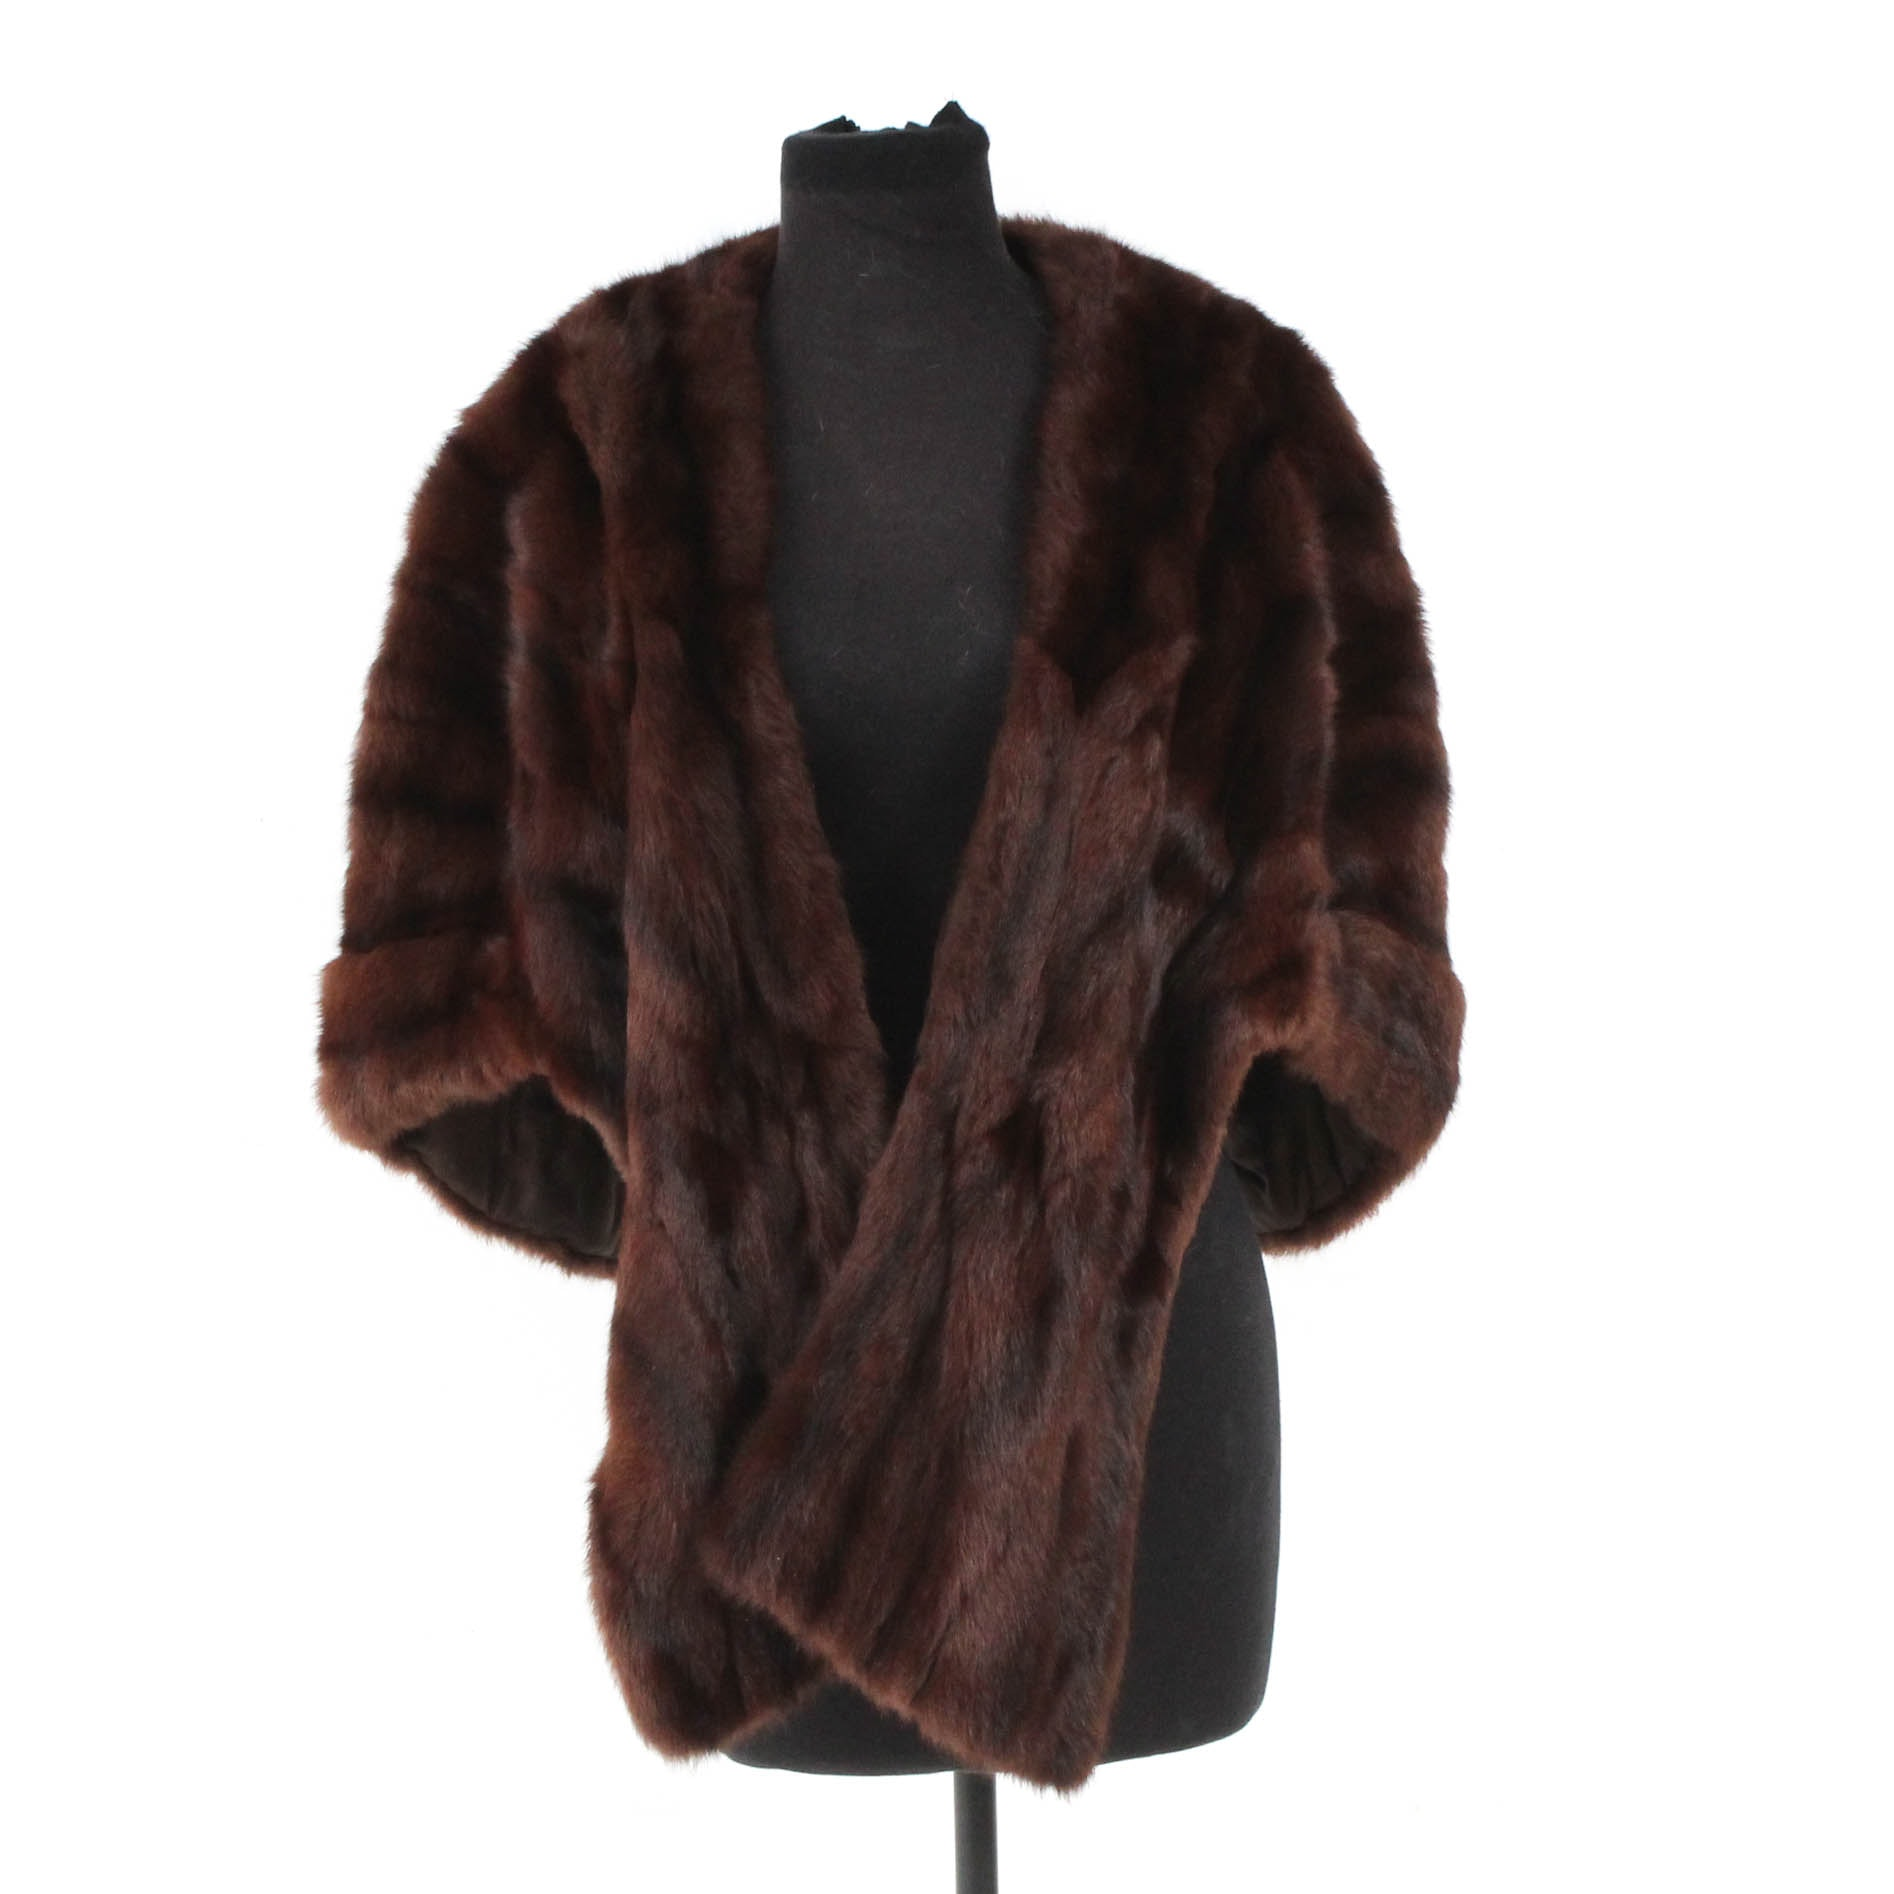 J. W. Brown Mink Fur Stole